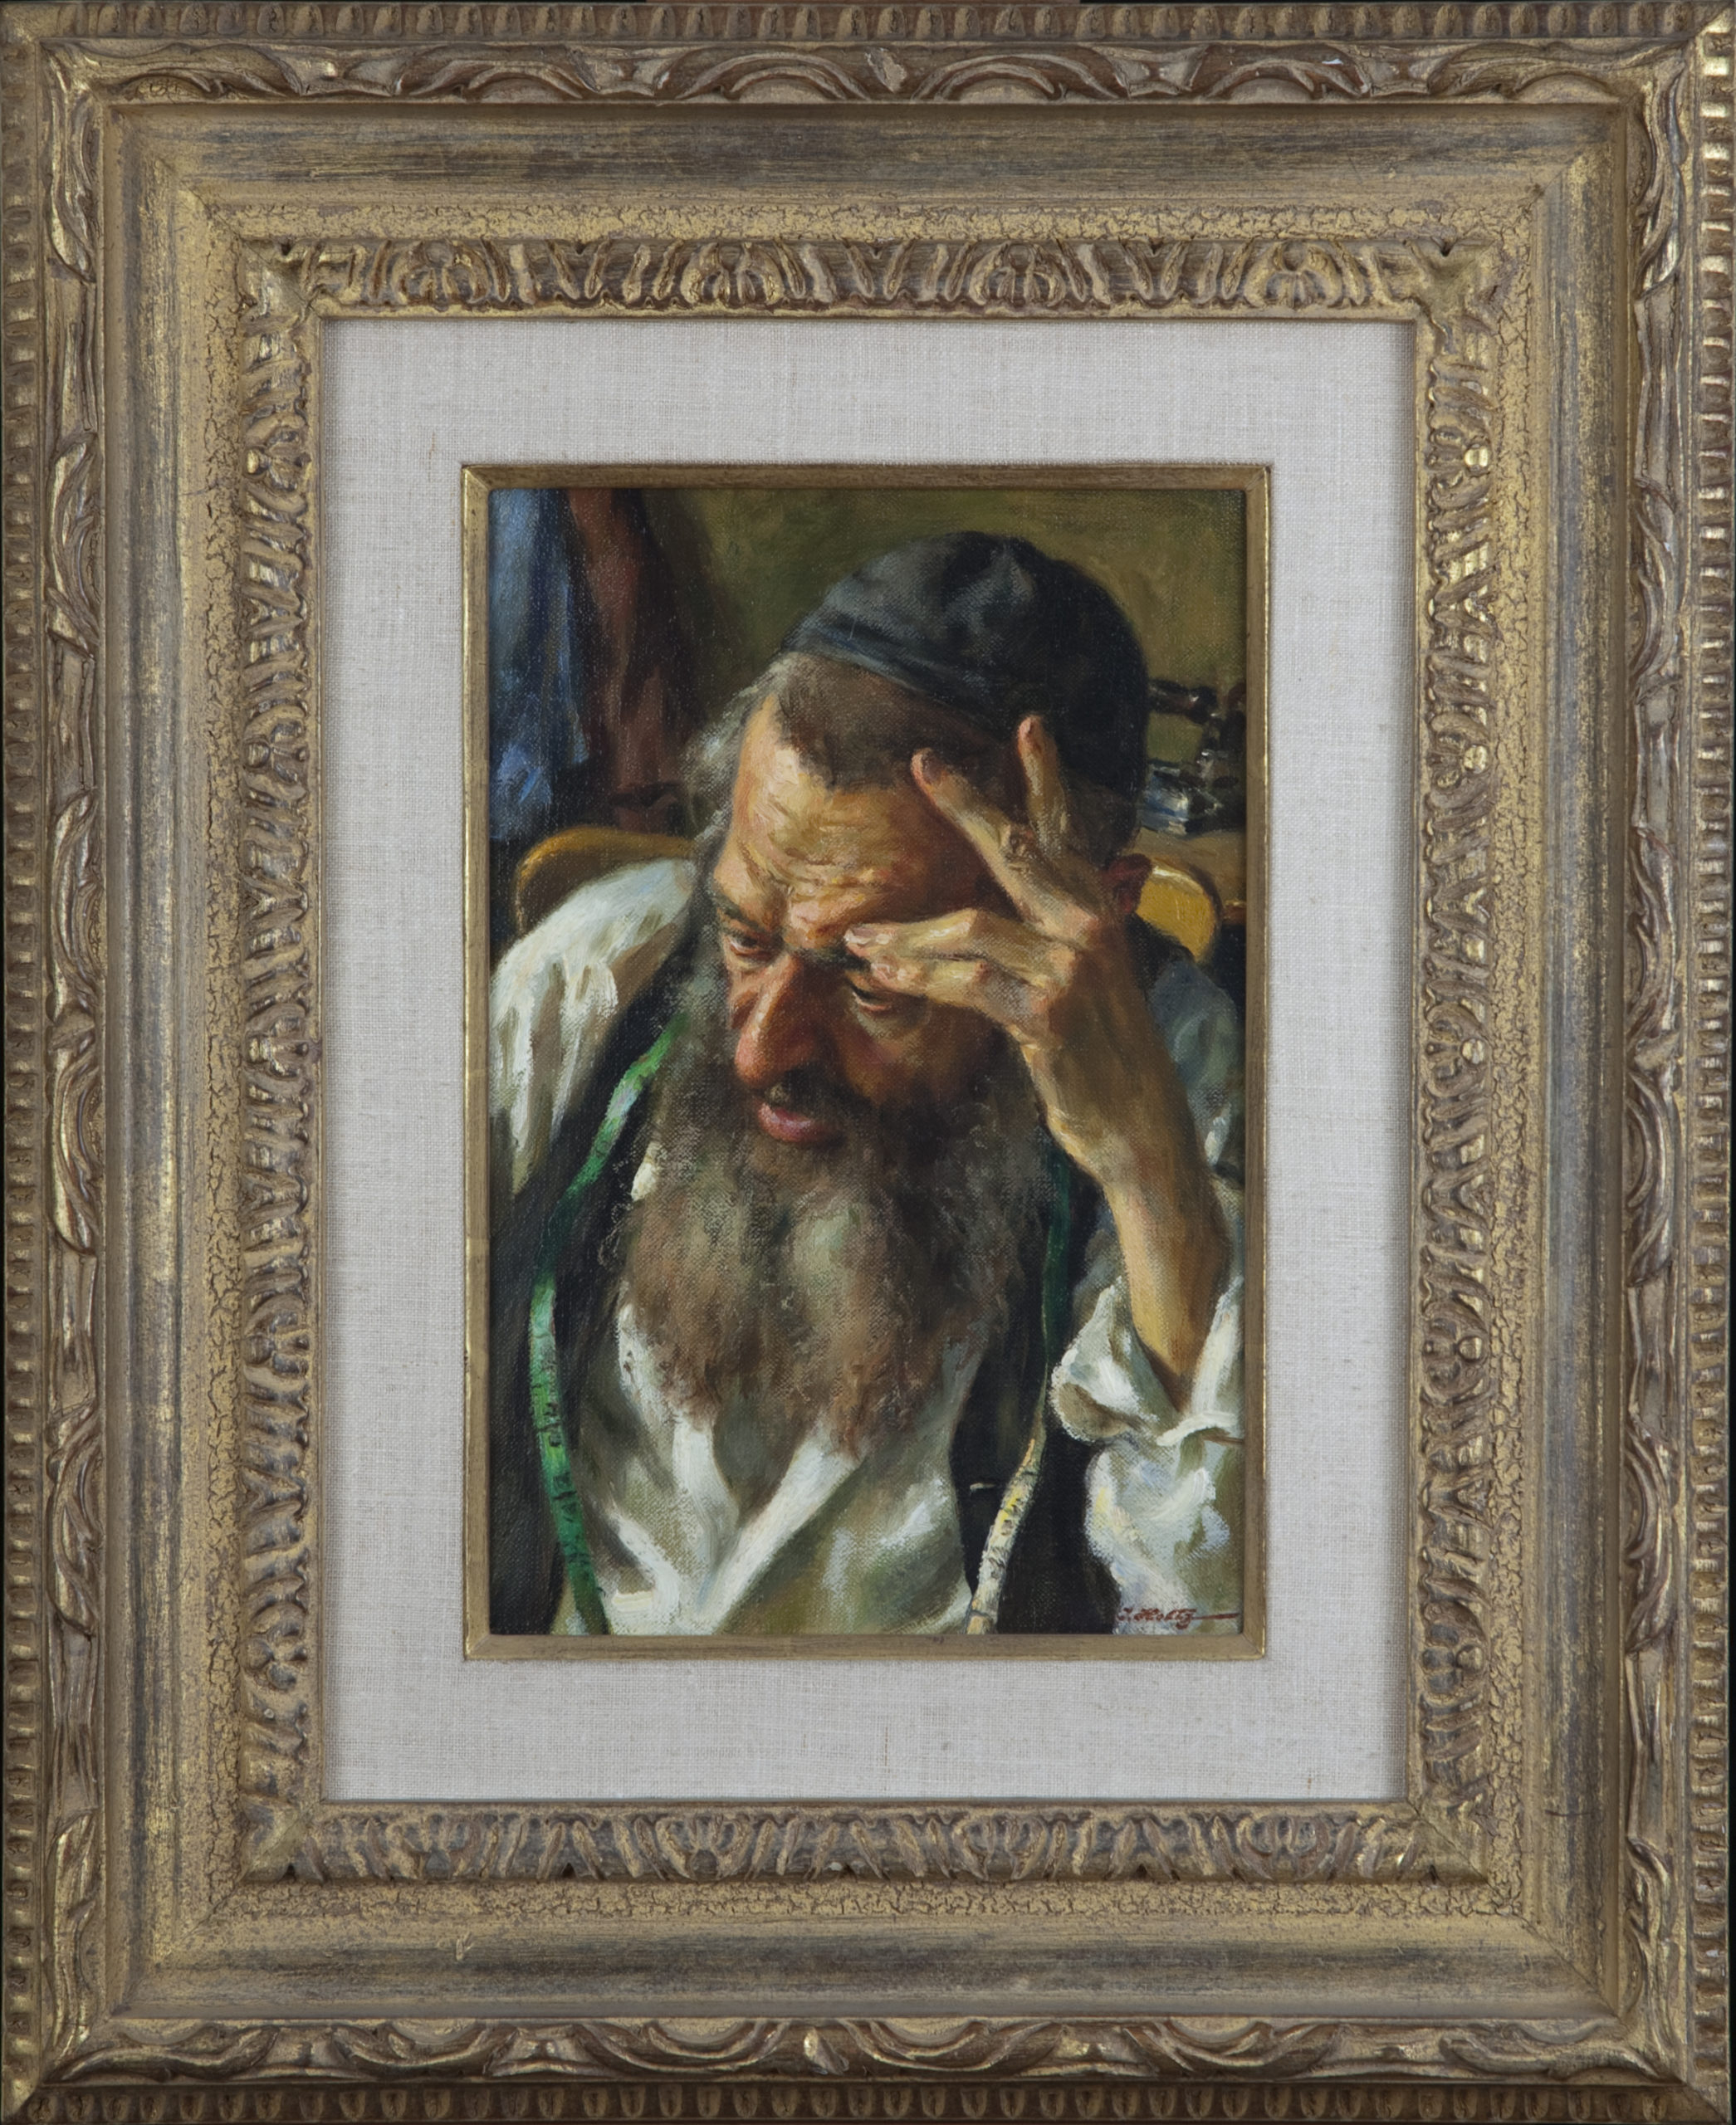 040 Tailor thinking - Oil on Canvas - 8 x 12 - Frame: 17.5 x 21.5 x 2.25